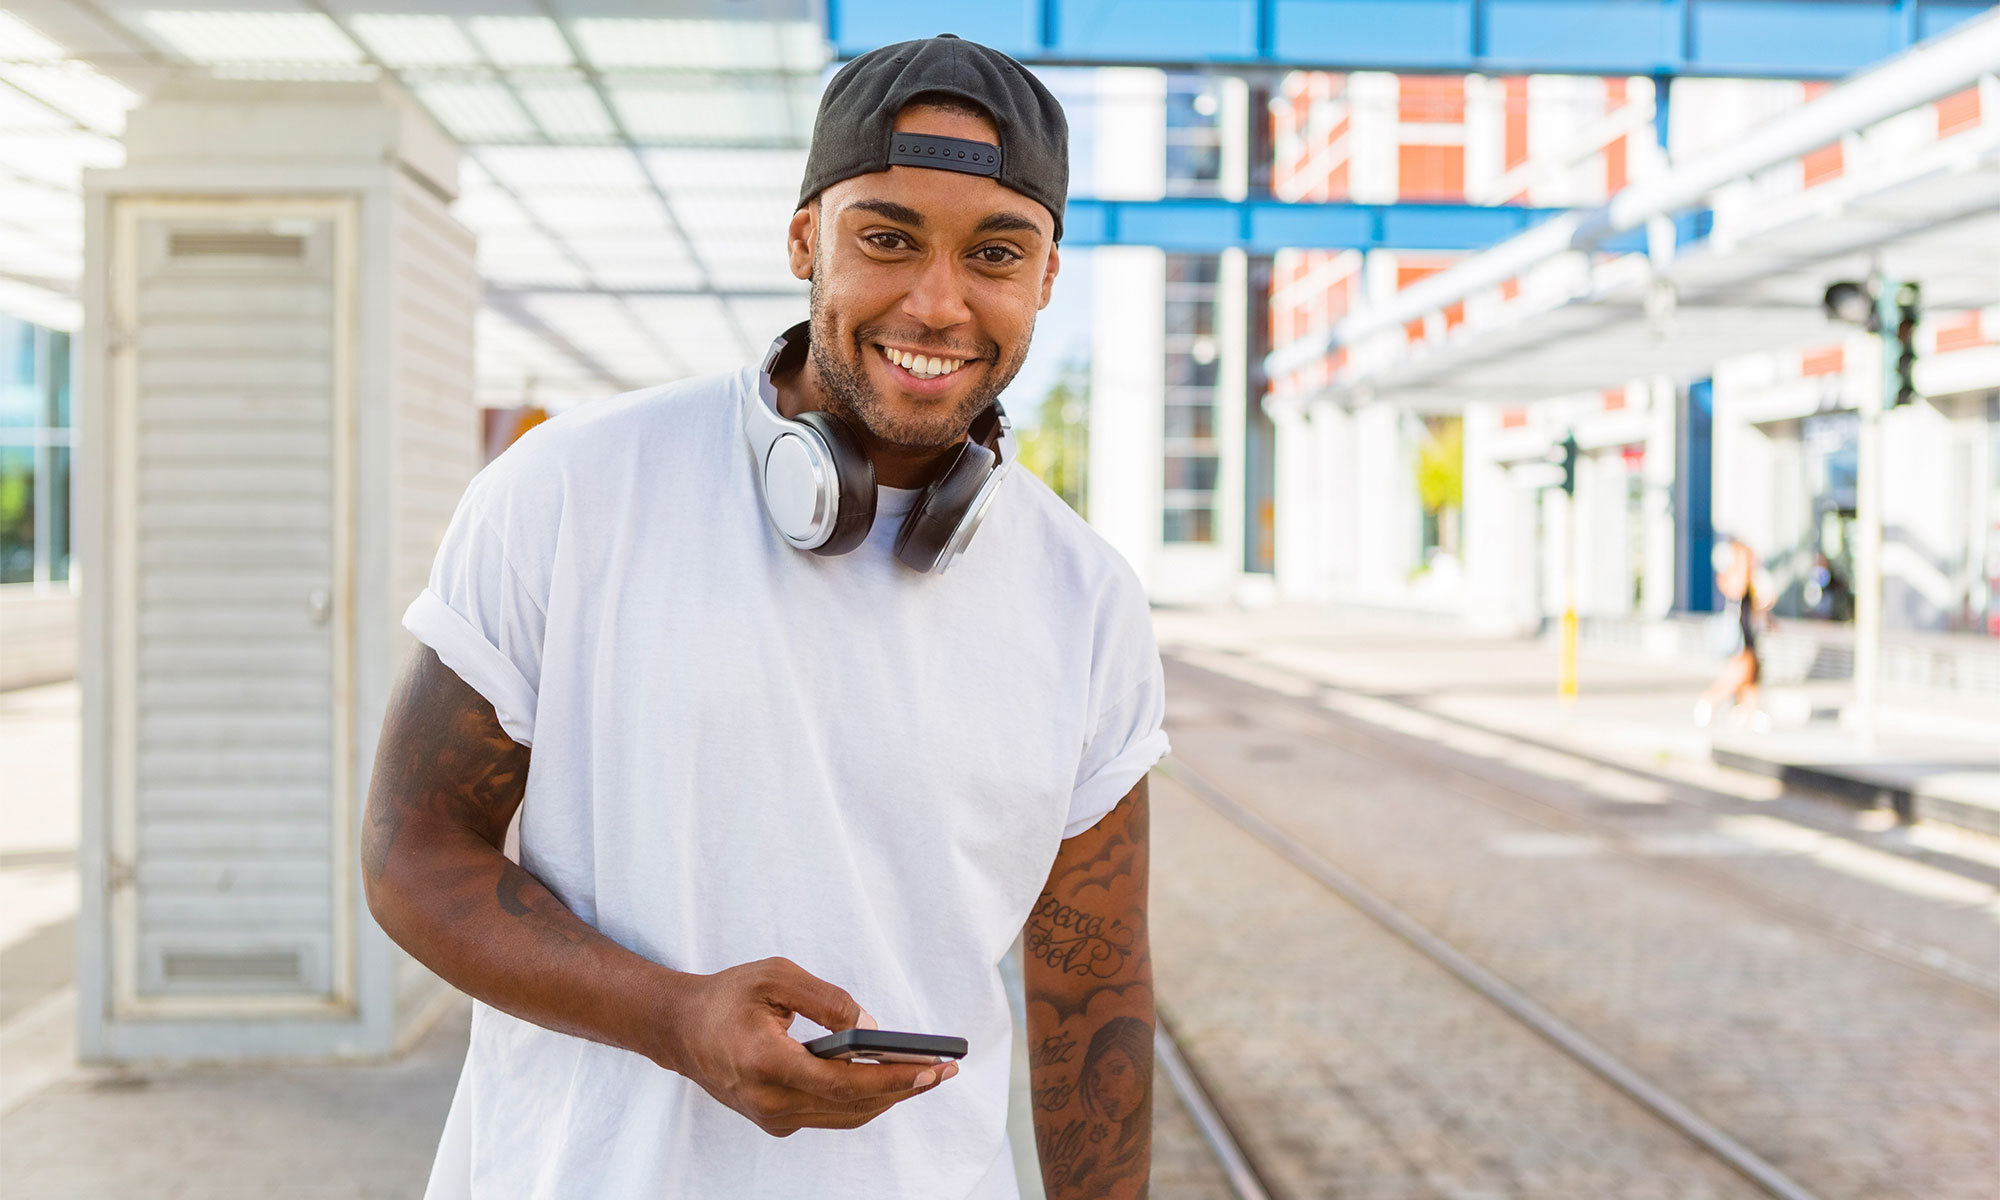 Smiling young man with headphones and smartphone waiting at tram stop.